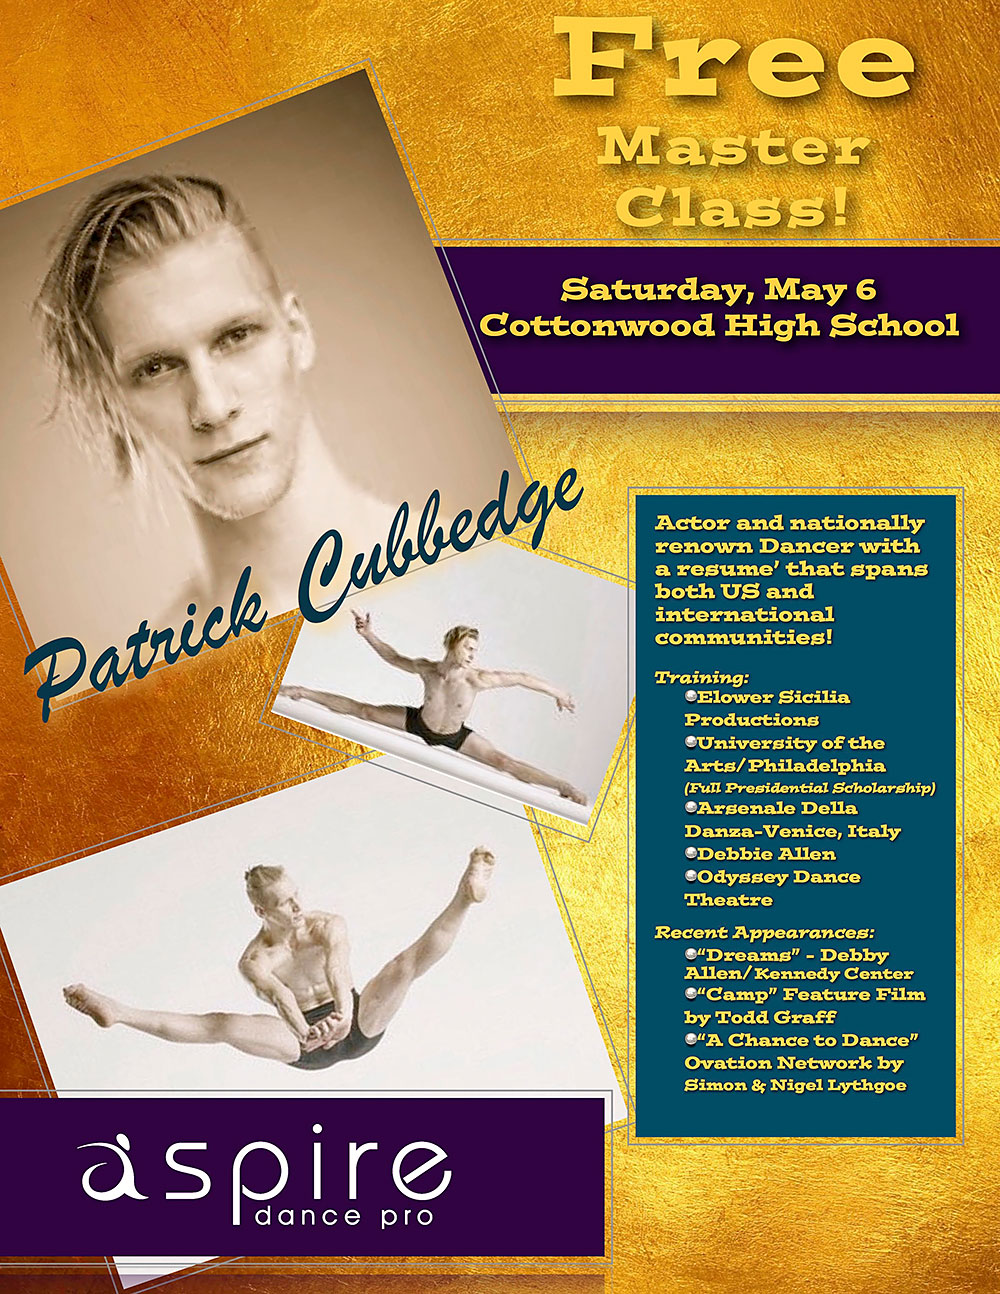 Patrick Cubbedge - Aspire Dance Pro Commpetitions Masterclass Instructor